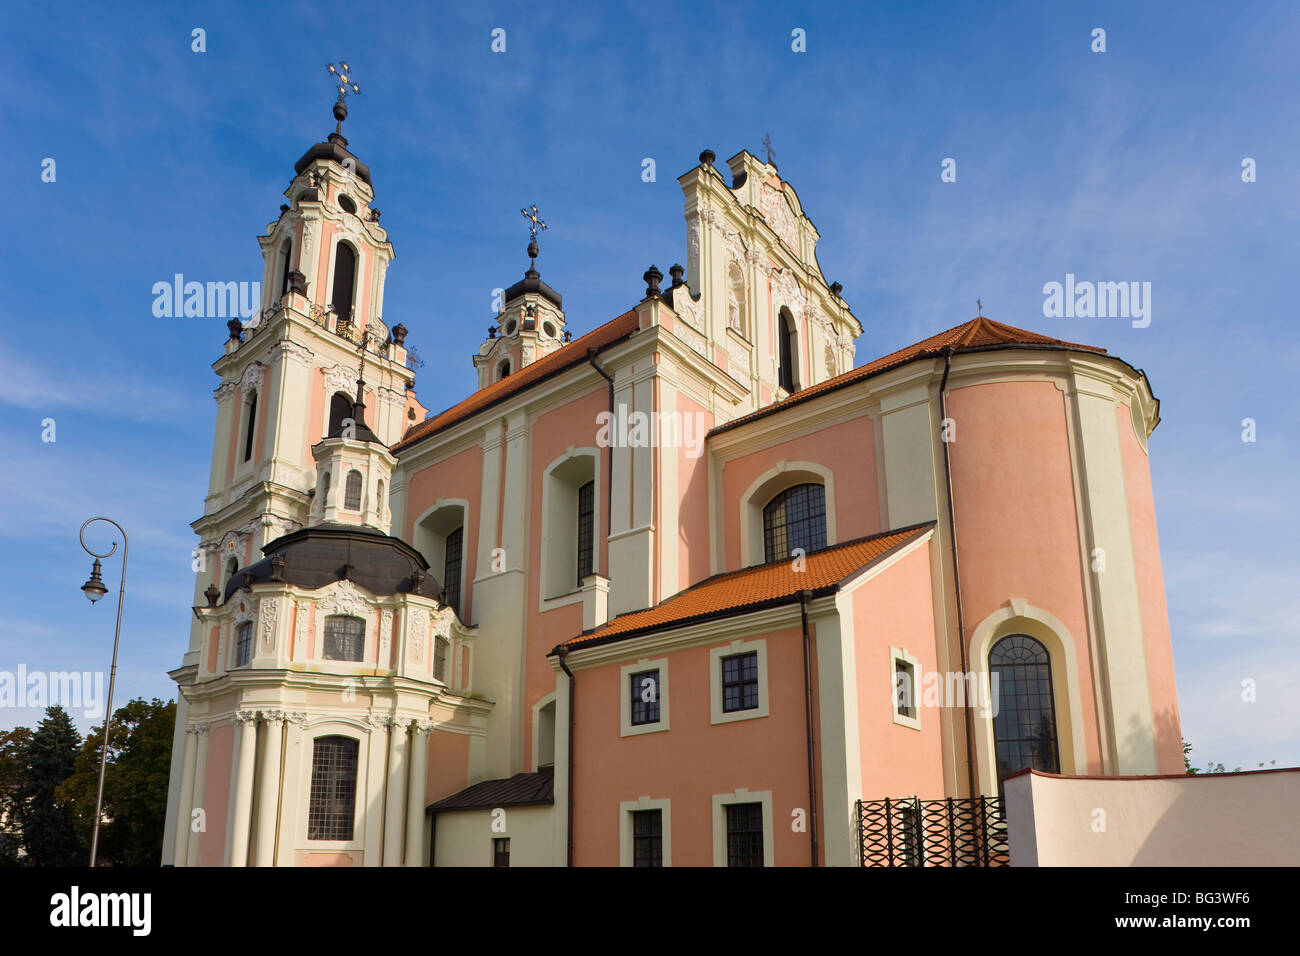 St. Catherine's Church and the Benedictine Nunnery, Vilnius, Lithuania, Baltic States, Europe Stock Photo